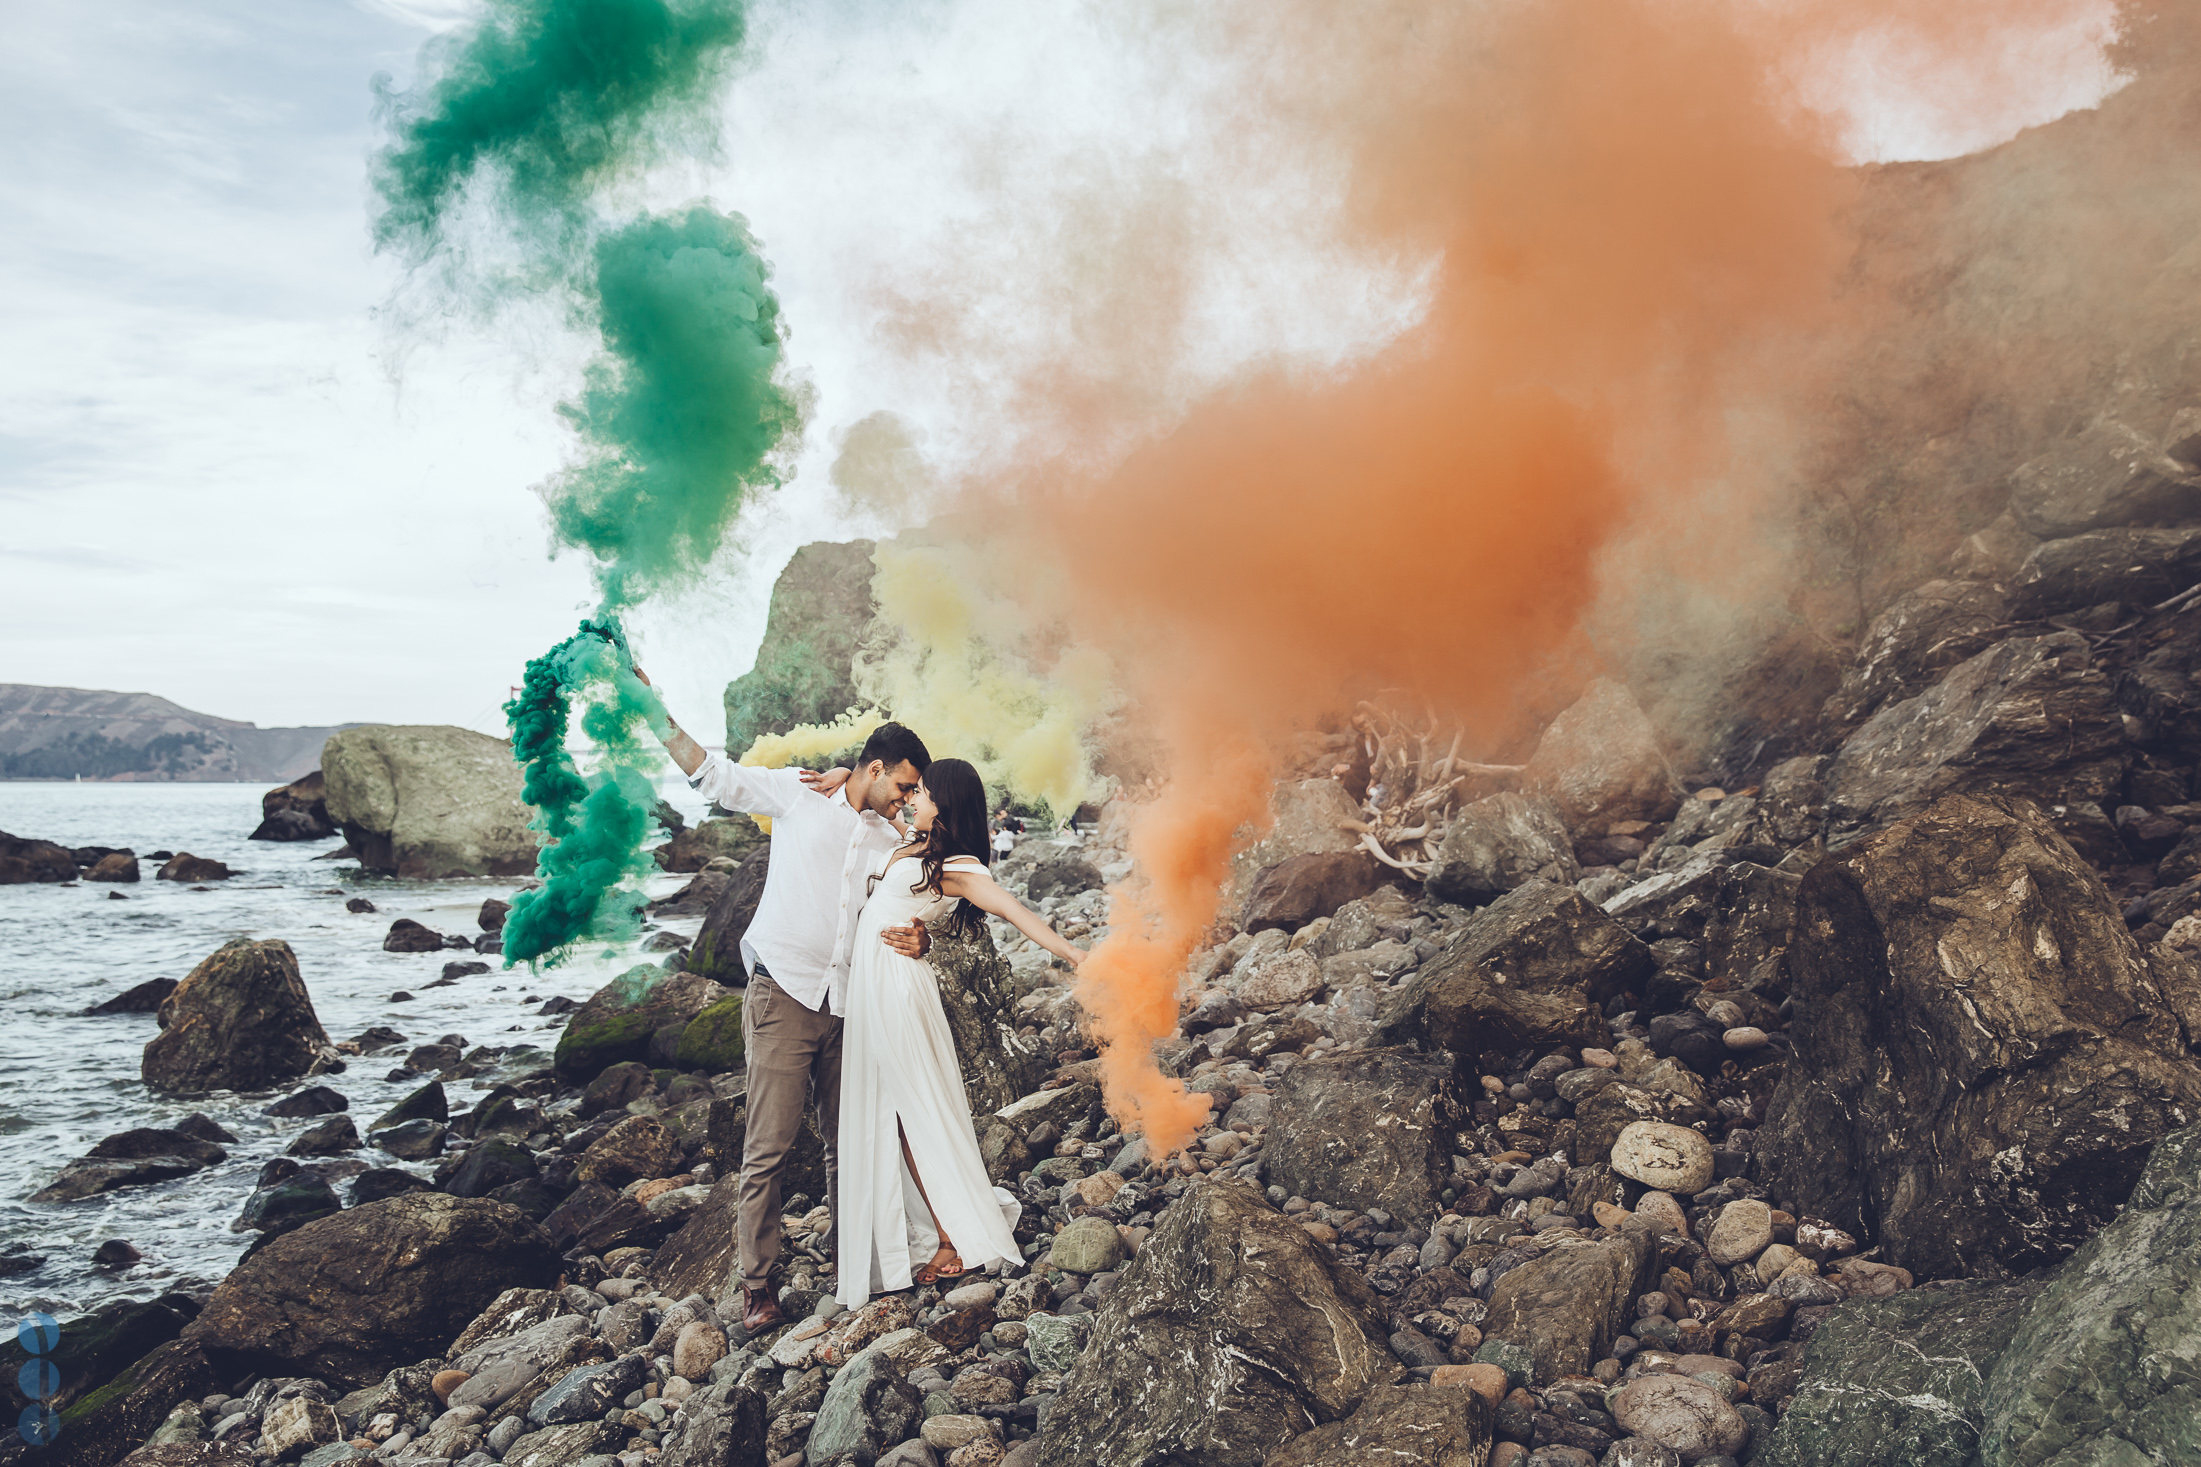 Engagement Session with Colored Smoke Bombs in San Francisco